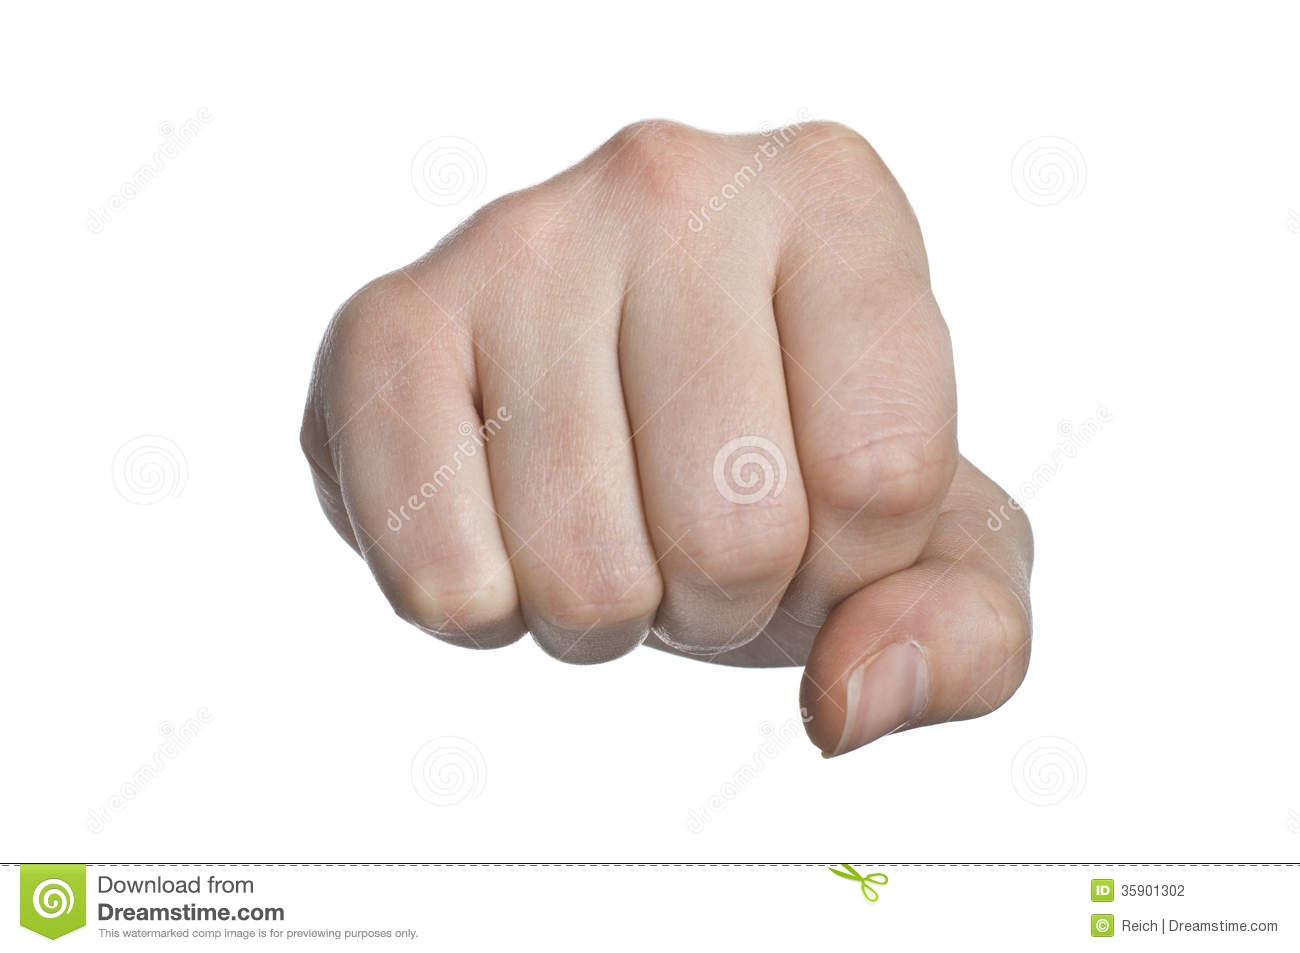 Punch Fisting